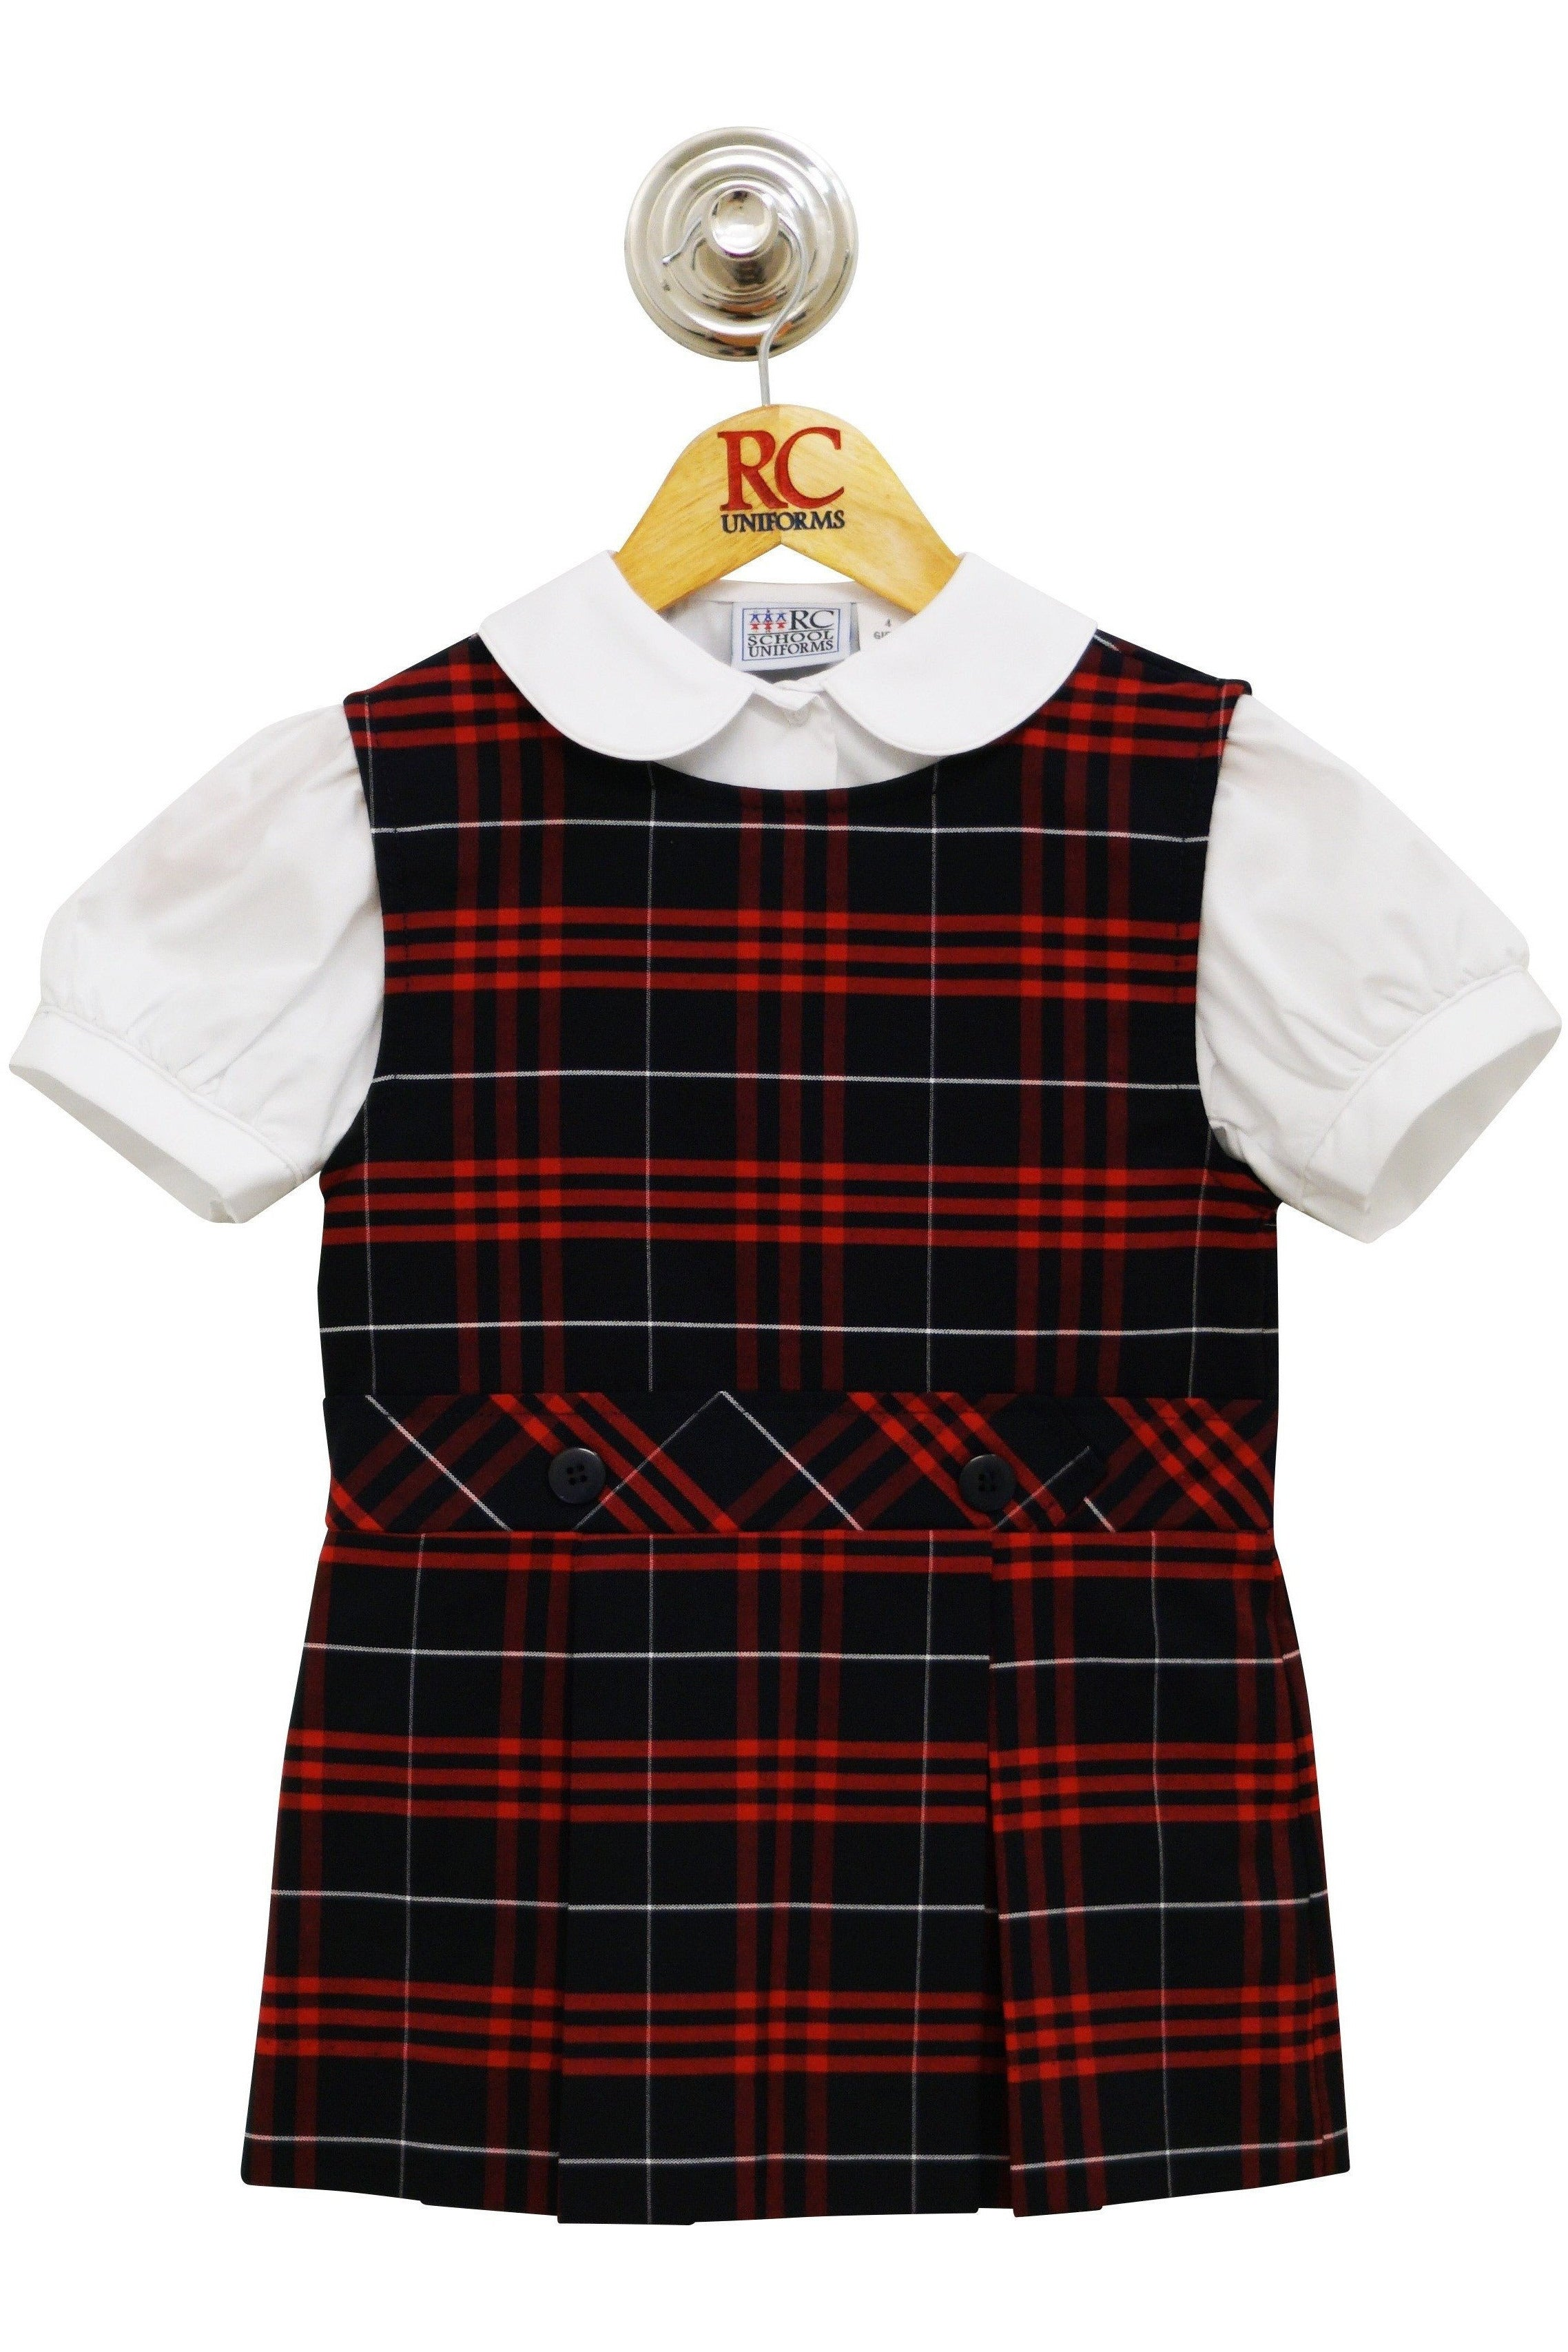 Plaid 37 Jumper - RC Uniforms